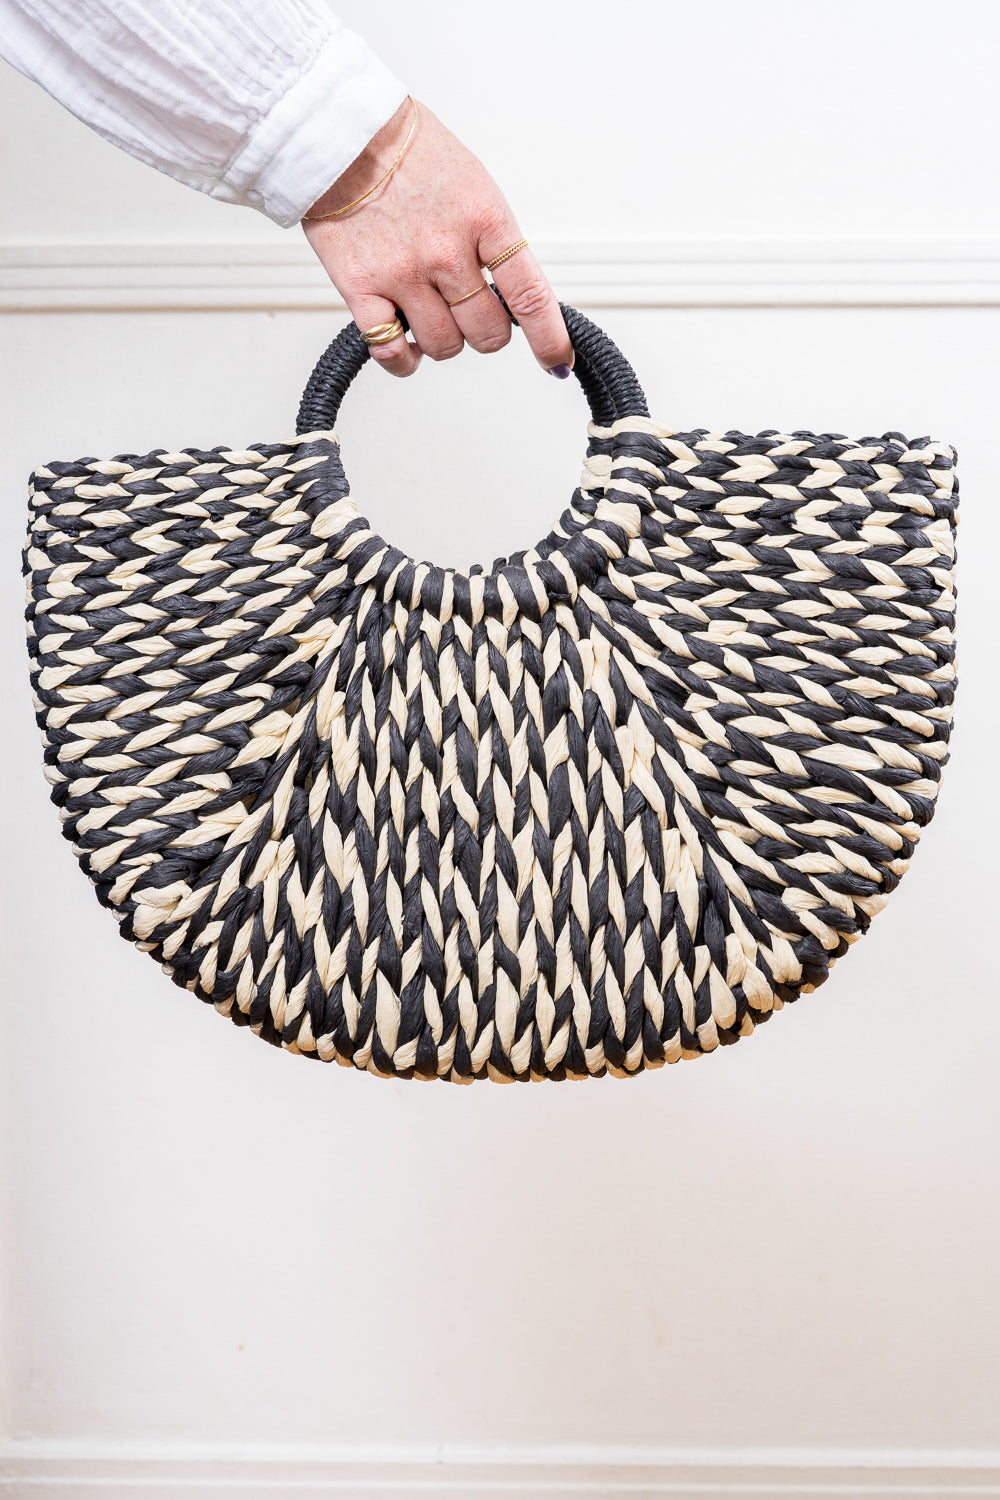 black and white raffia straw tote hand bag held in hand Janna Conner